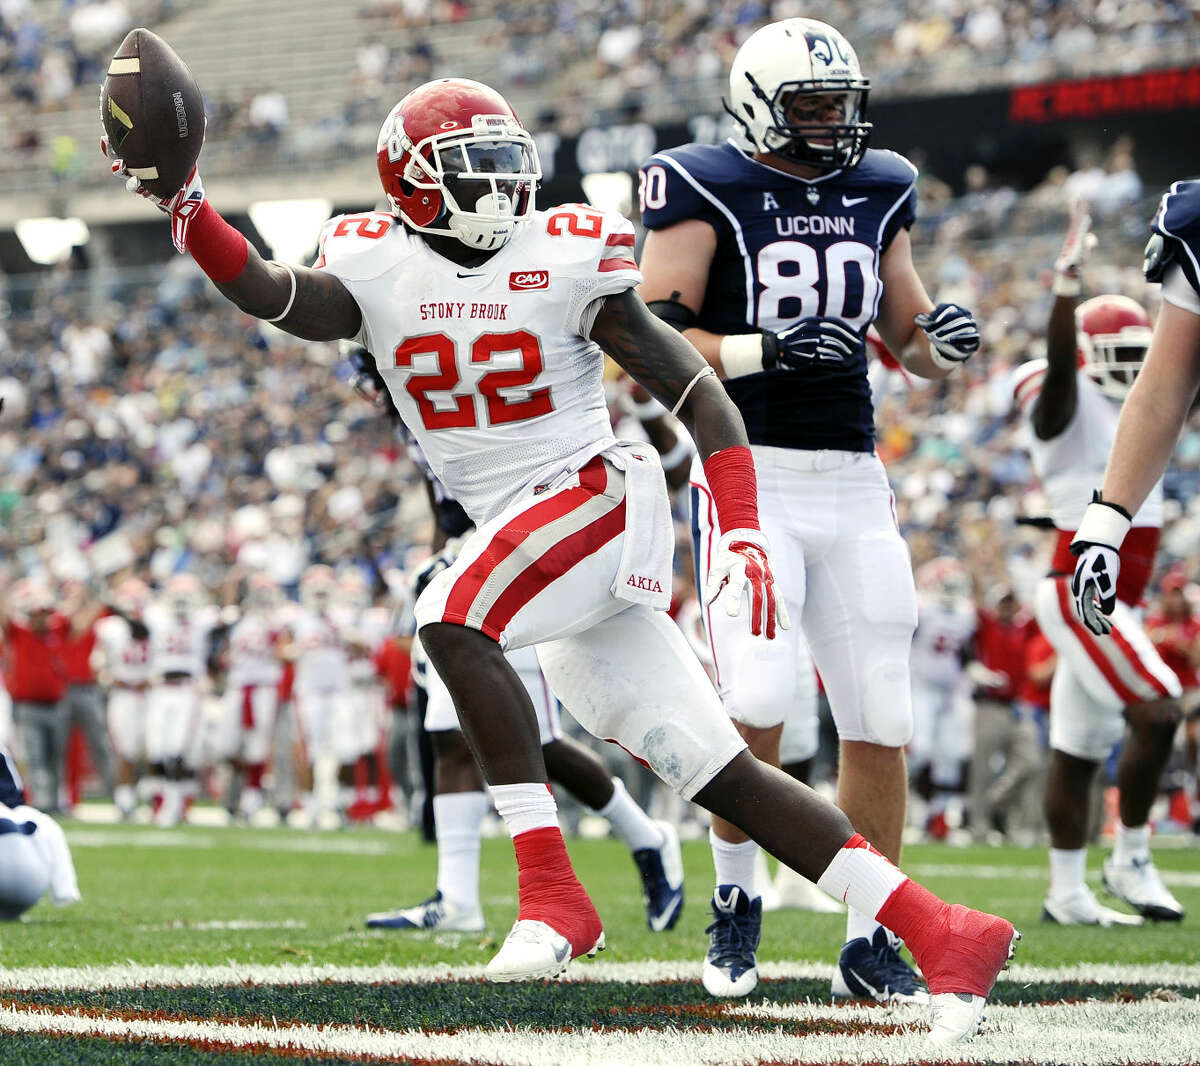 Stony Brook defensive back Naim Cheeseboro (22) celebrates after a Connecticut fumble for a touchdown during the first half of an NCAA college football game at Rentschler Field, Saturday, Sept. 6, 2014, in East Hartford, Conn. (AP Photo/Jessica Hill)